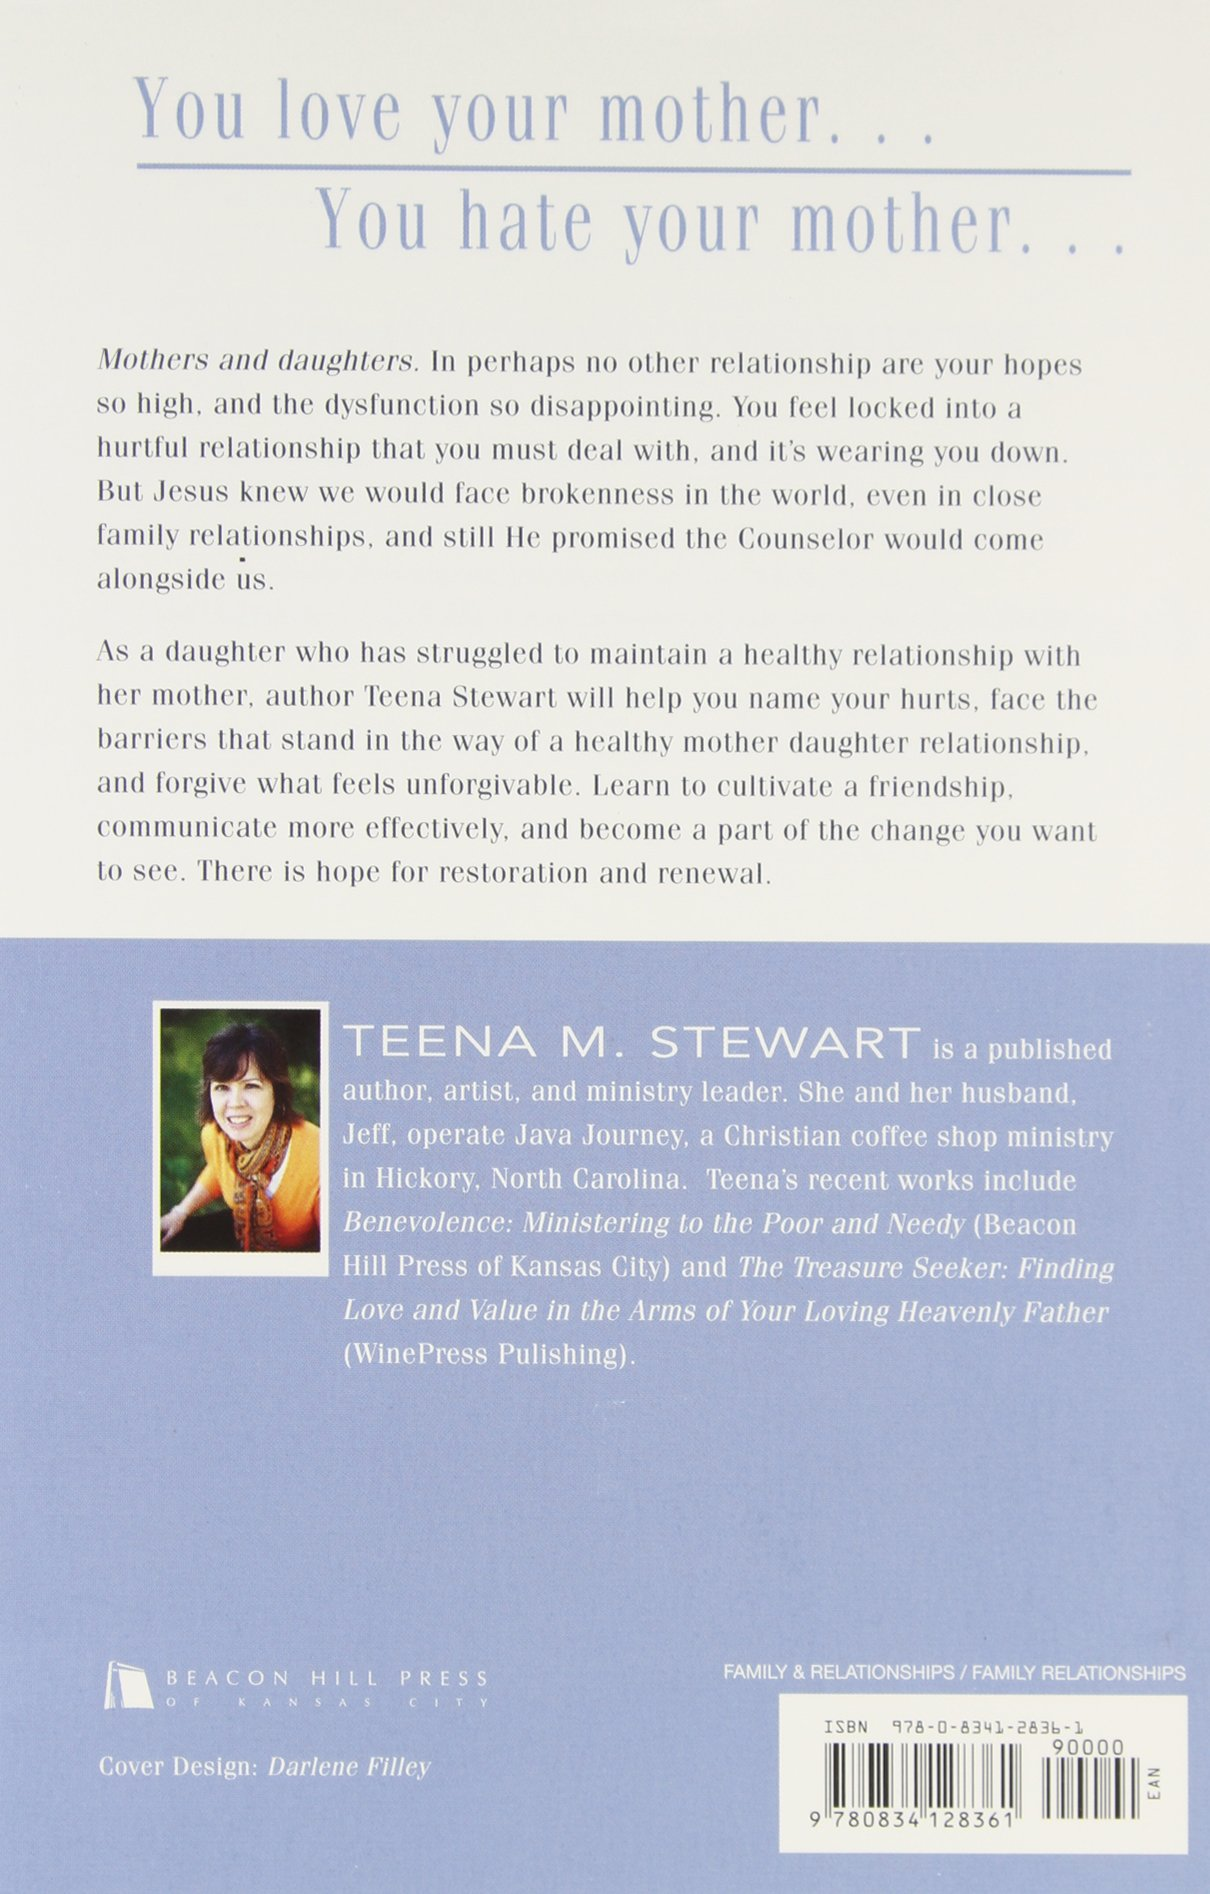 Mothers and Daughters: Mending a Strained Relationship: Teena M. Stewart:  9780834128361: Amazon.com: Books